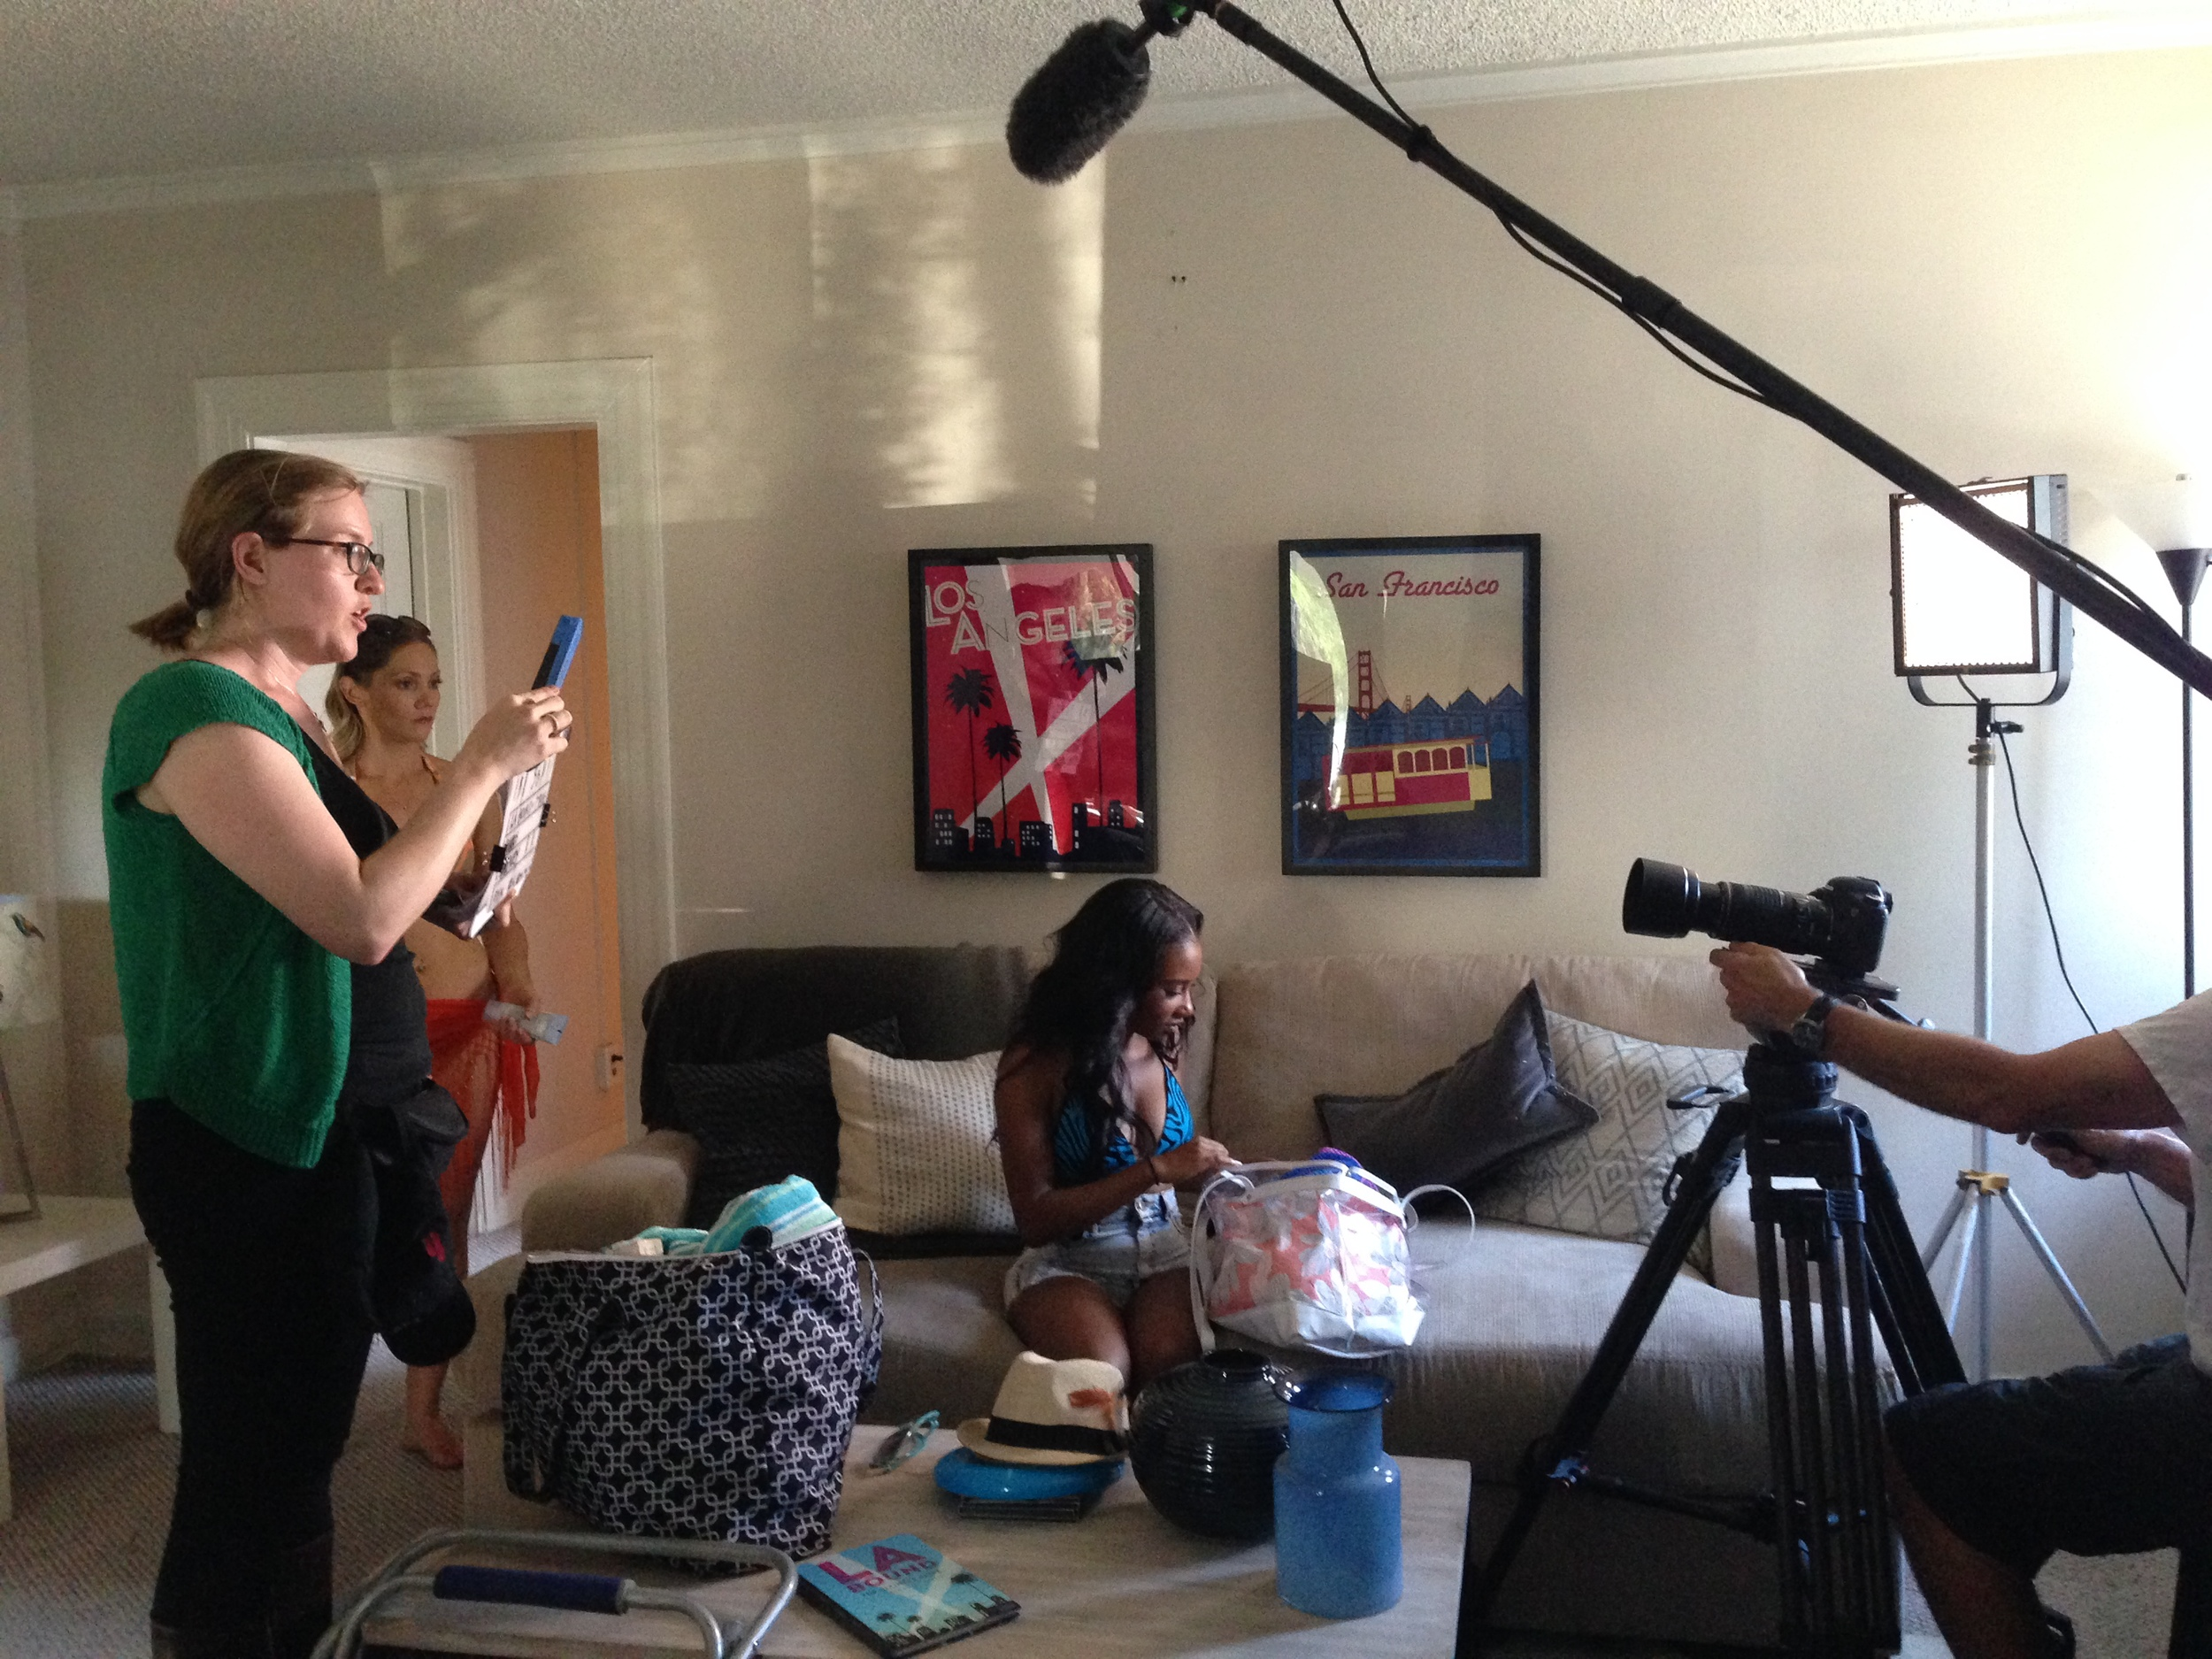 Filming our short for LA Bound...